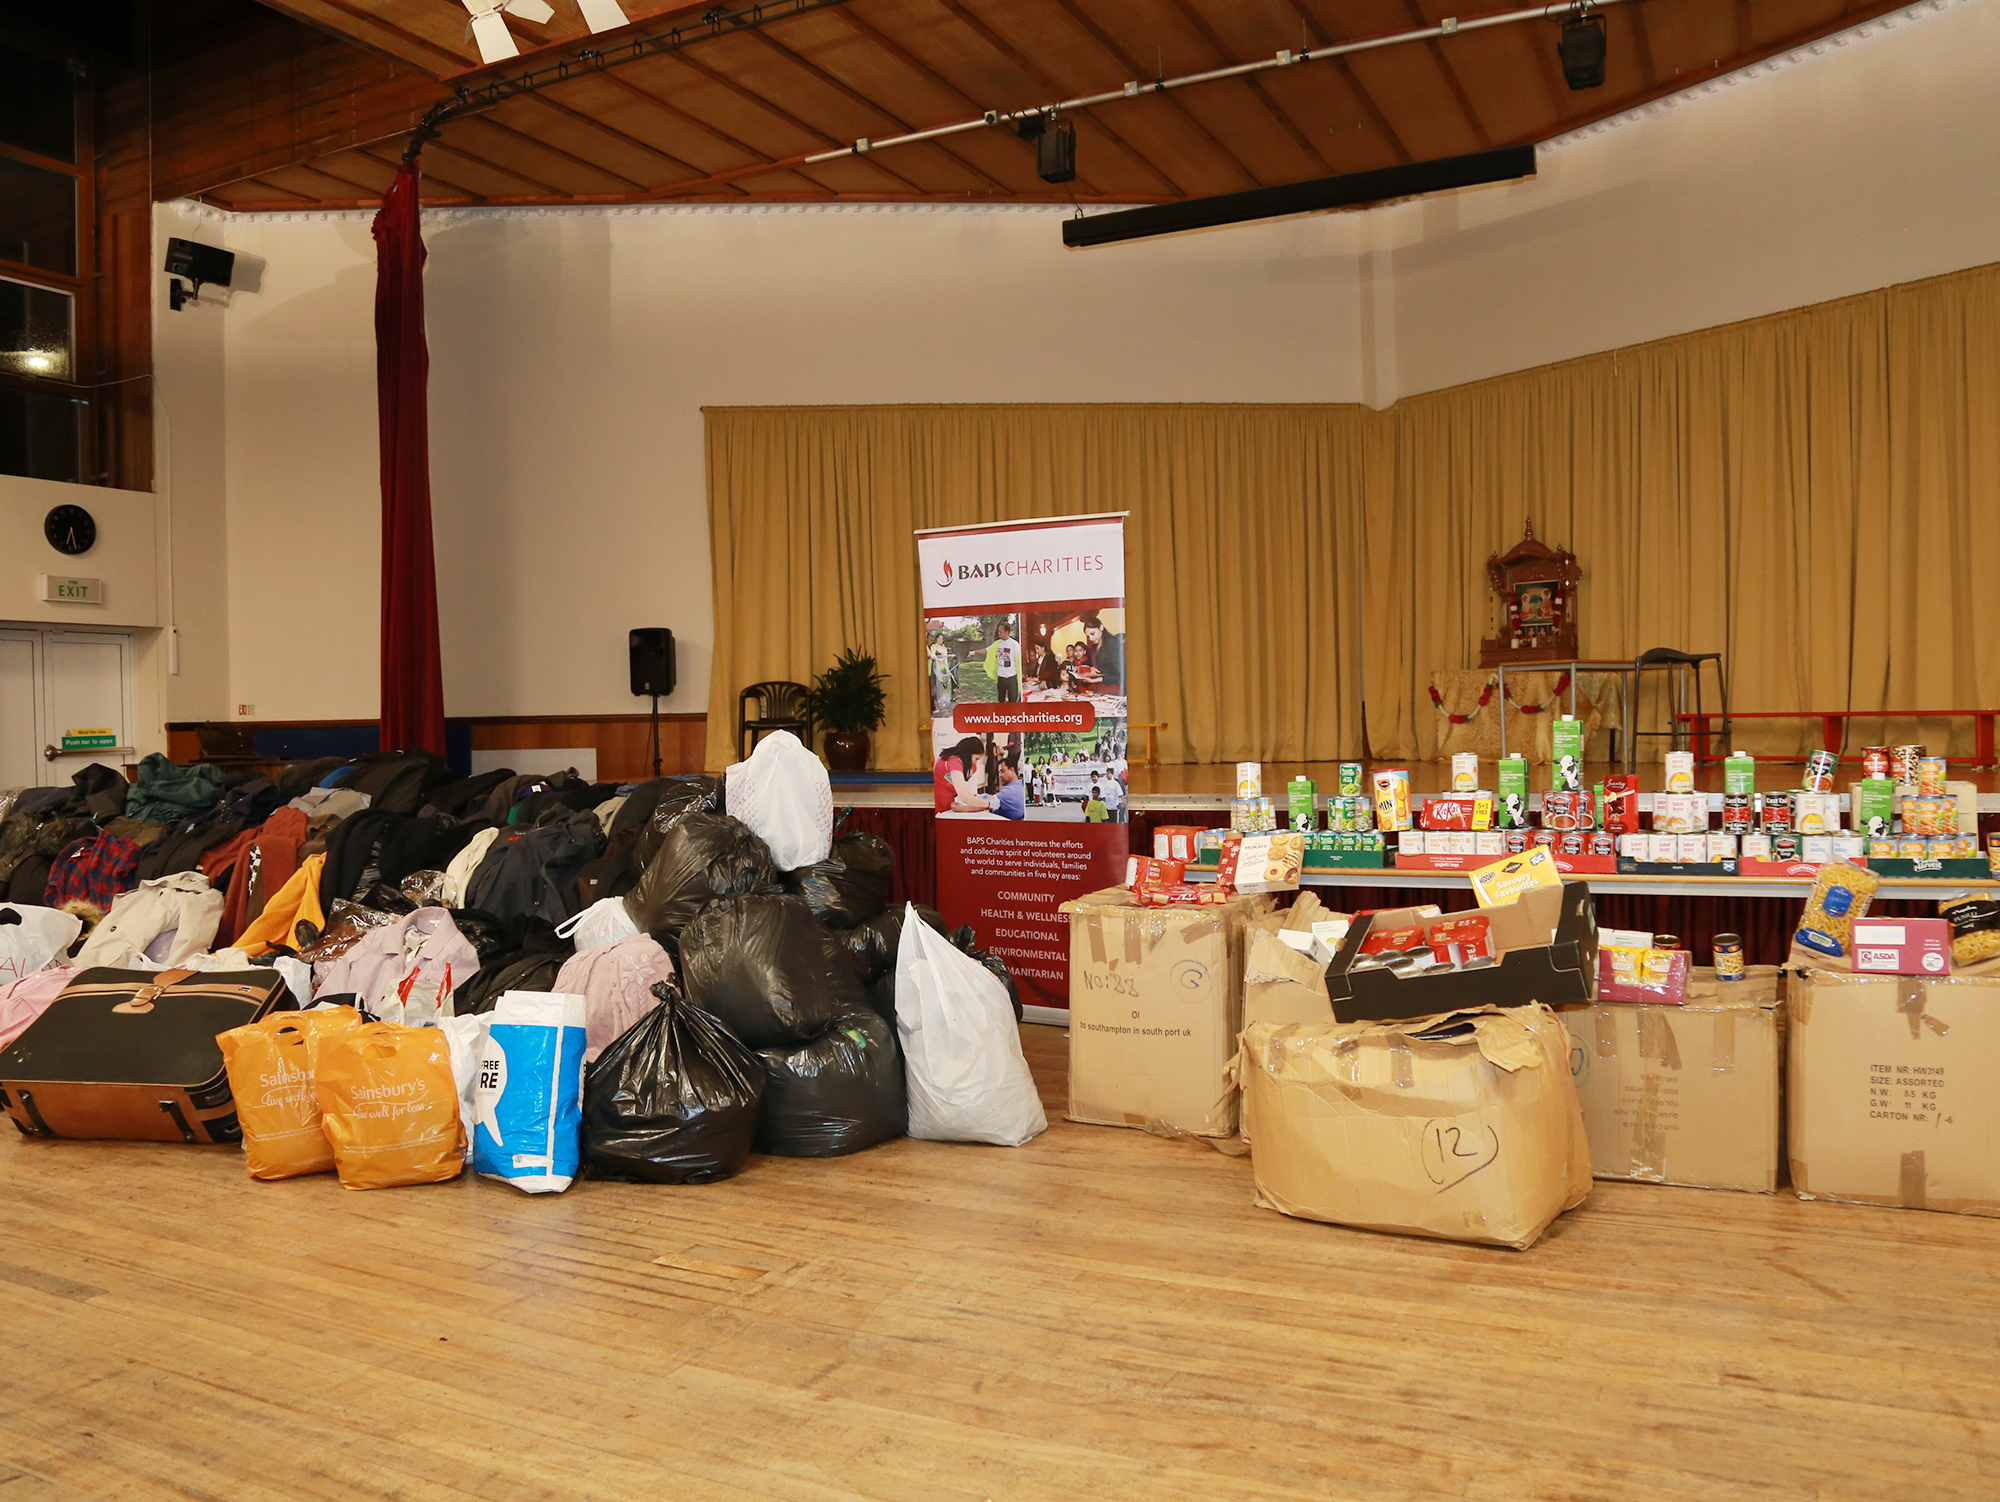 1812_london_wintercharitydrive (1)a